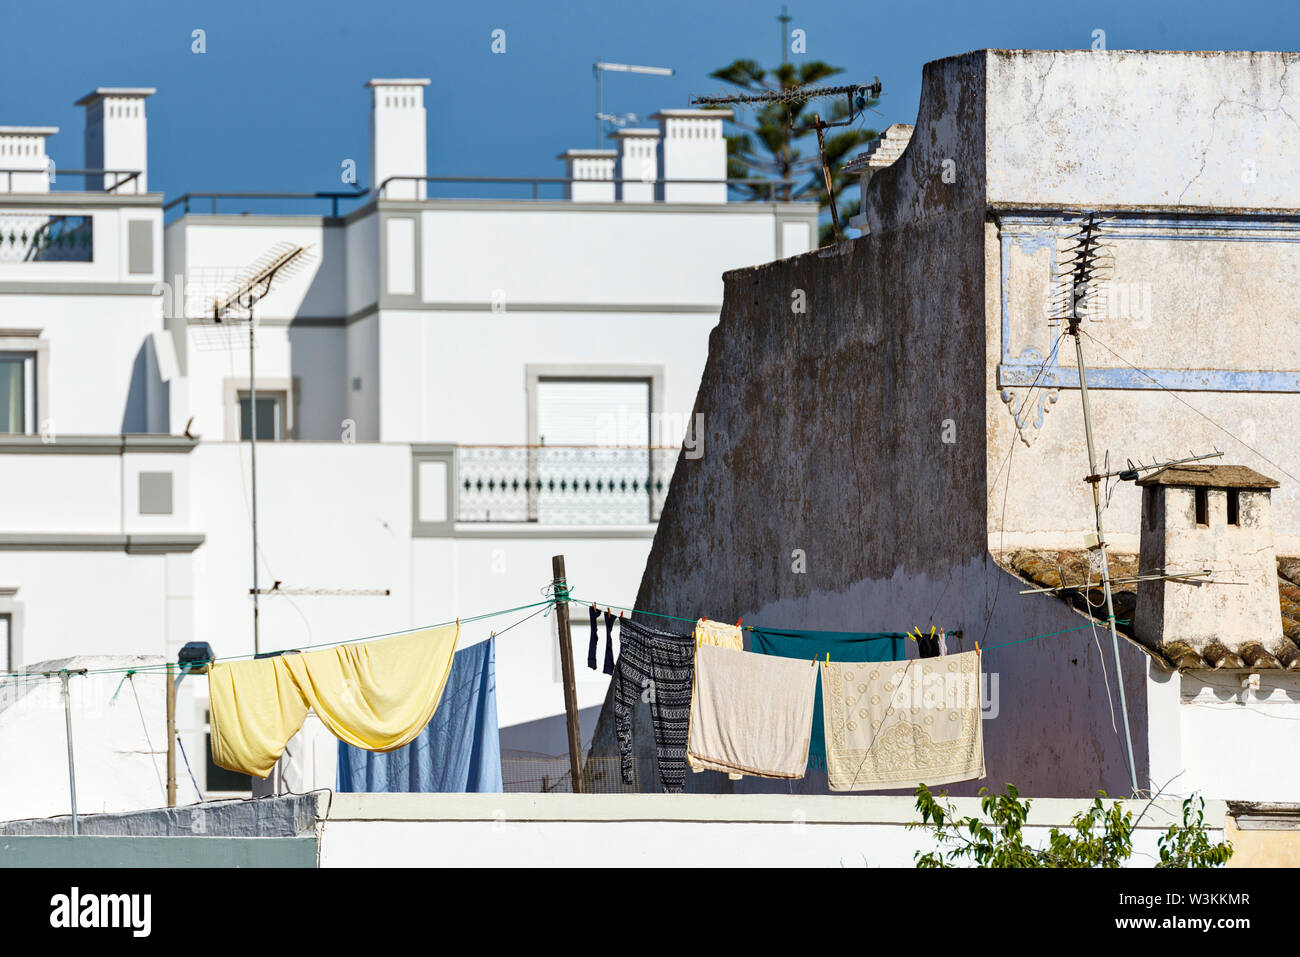 multiple cubic terrace whitewash on the traditional houses in Olhao, Algarve, Portugal - Stock Image